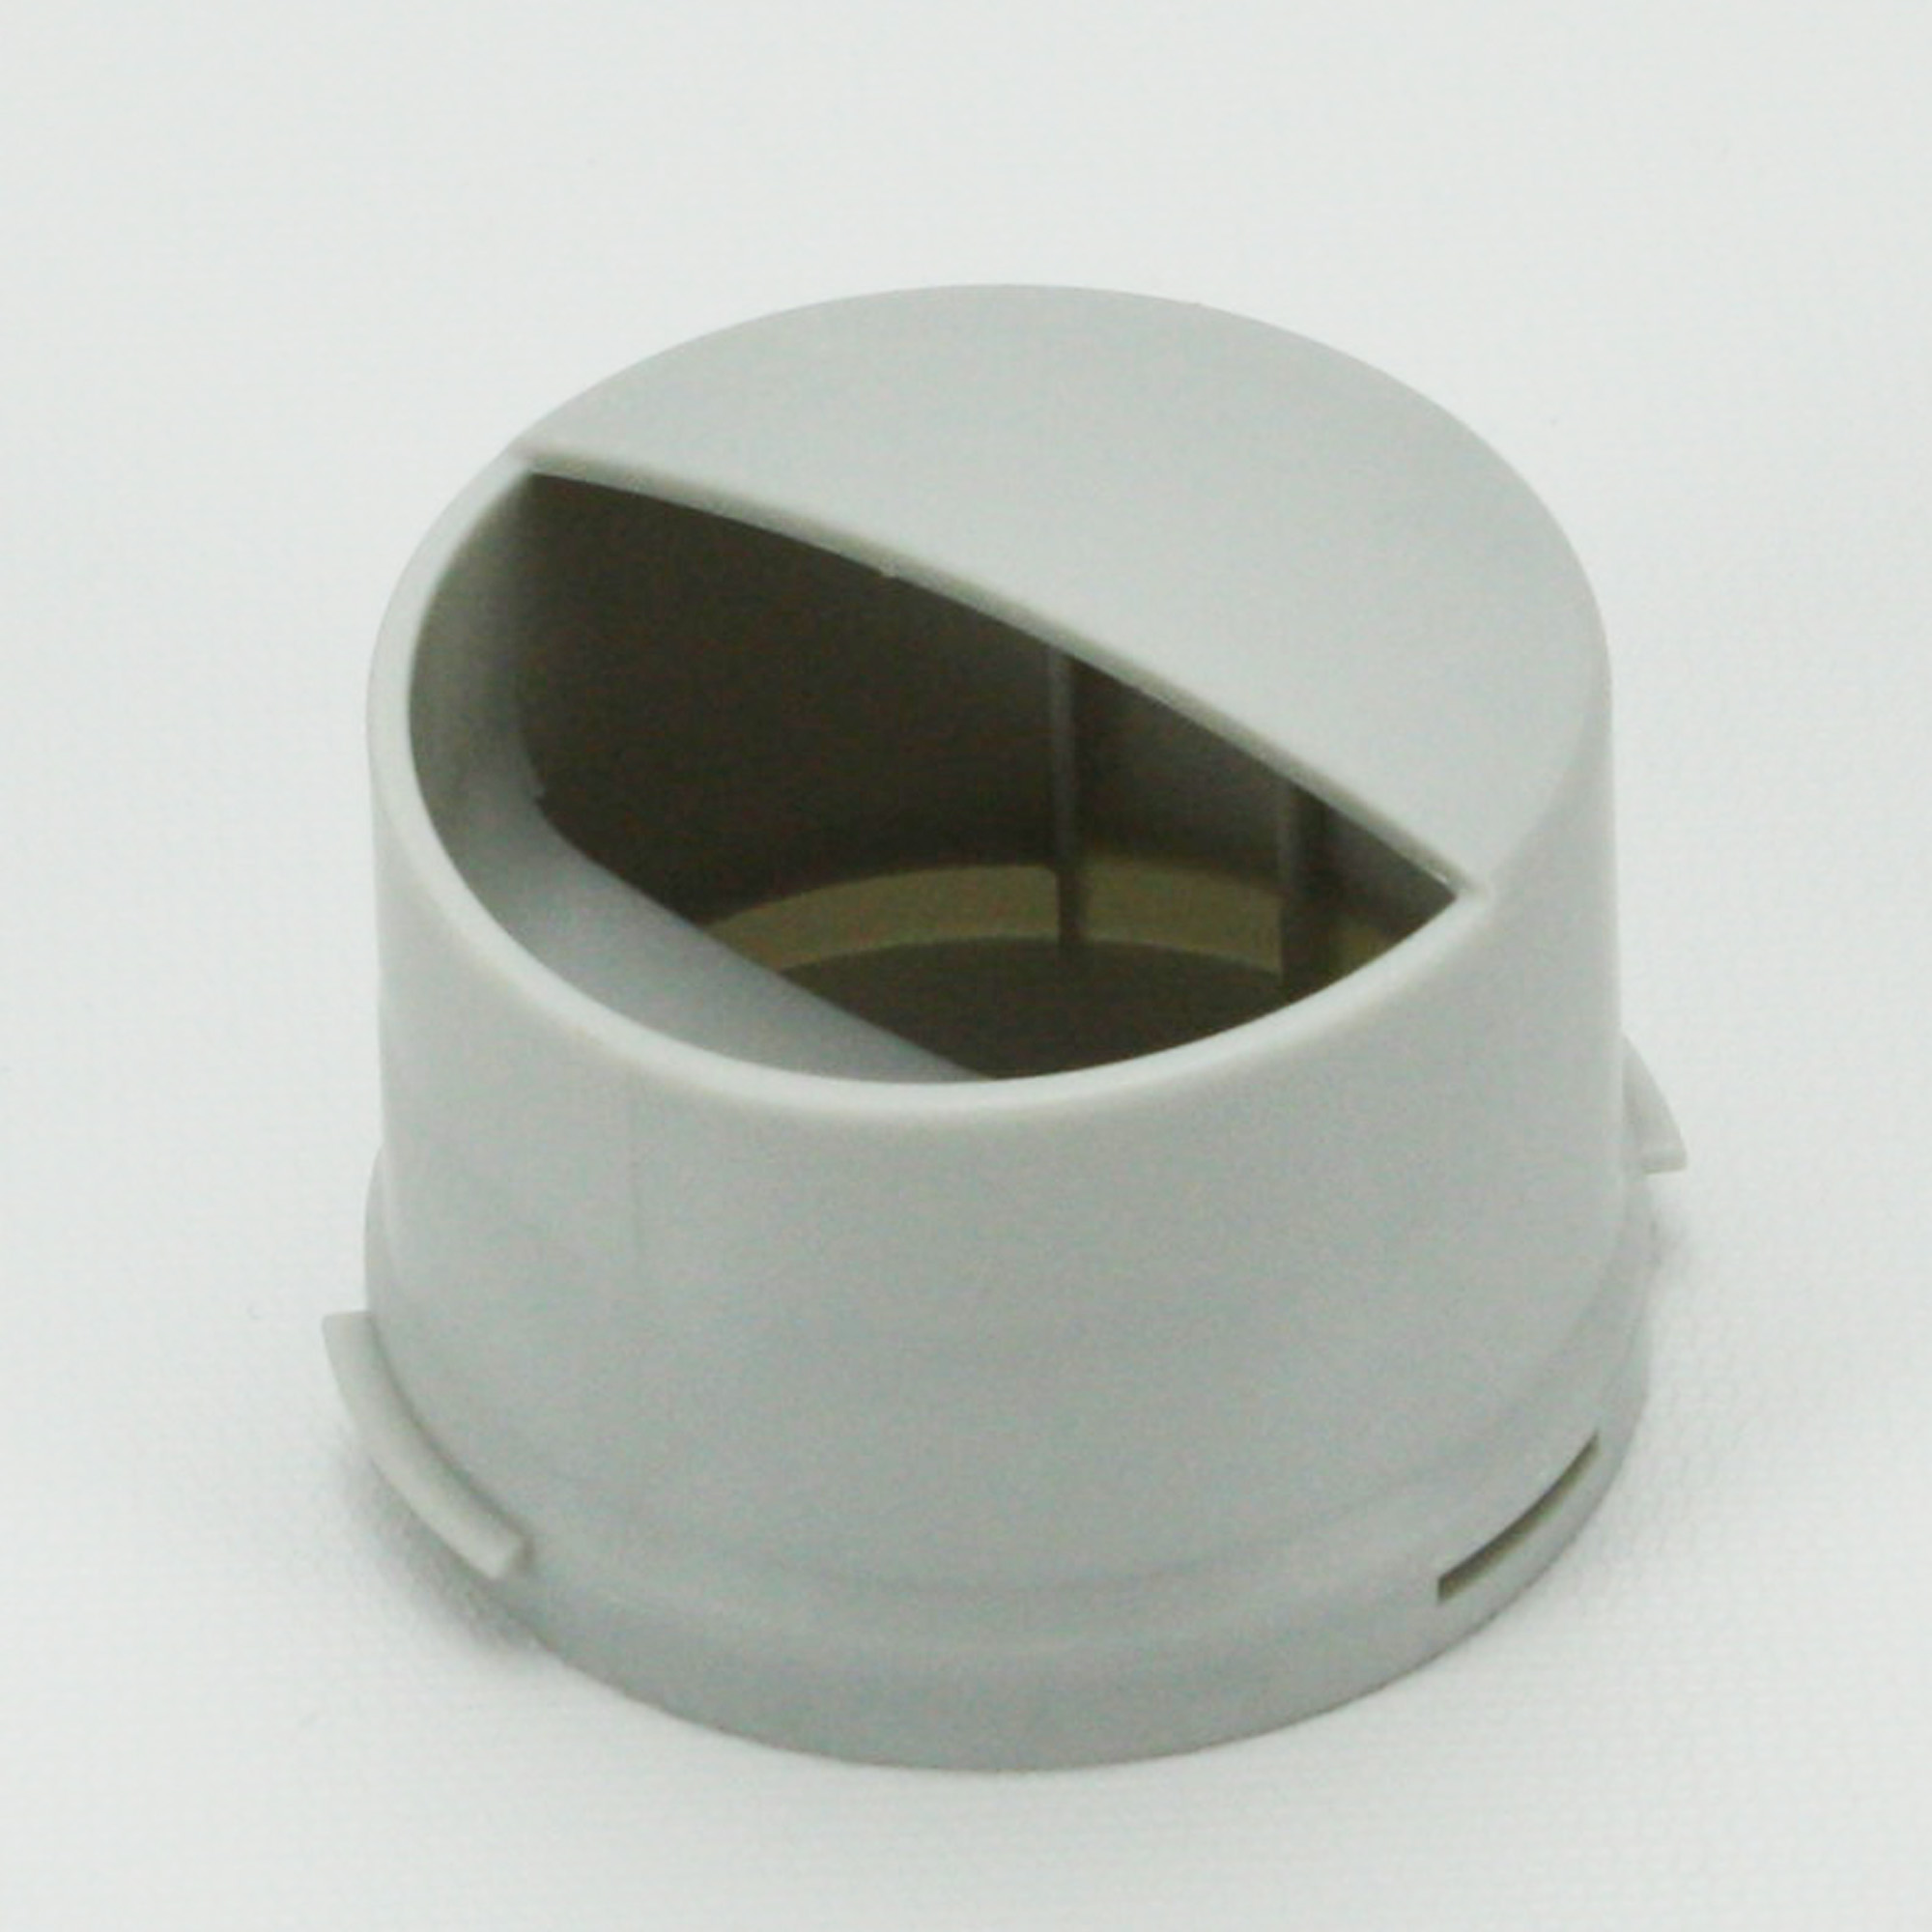 Wp2260518mg For Whirlpool Refrigerator Water Filter Cap Ebay